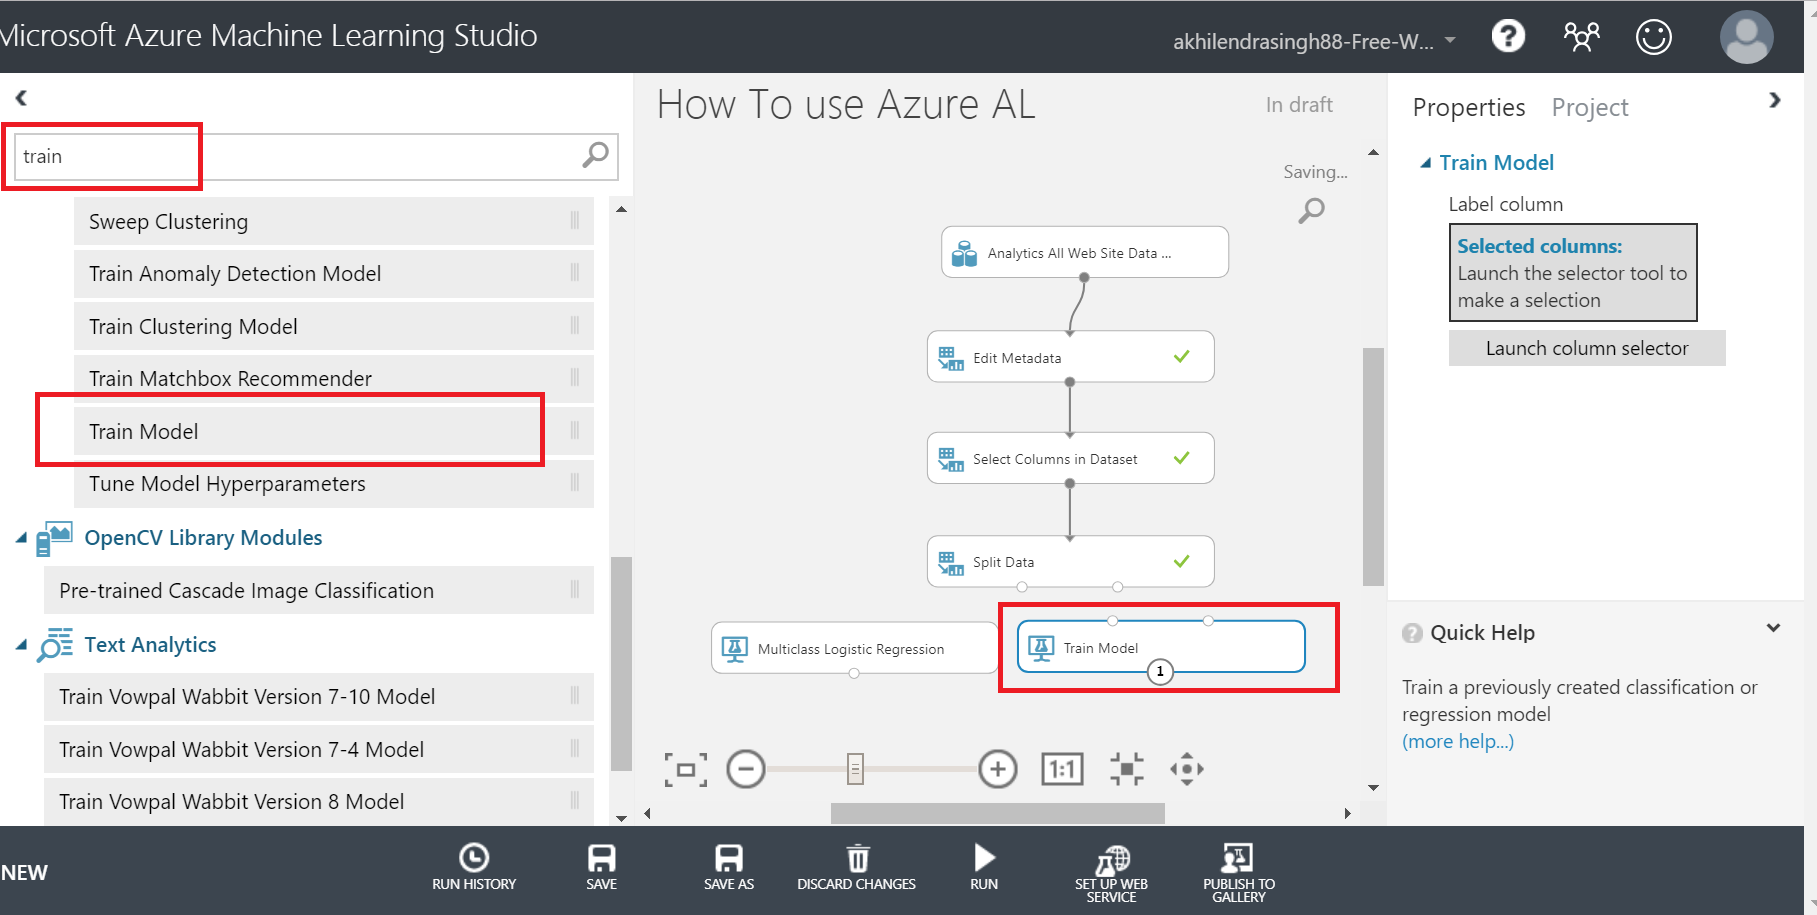 train model in azure